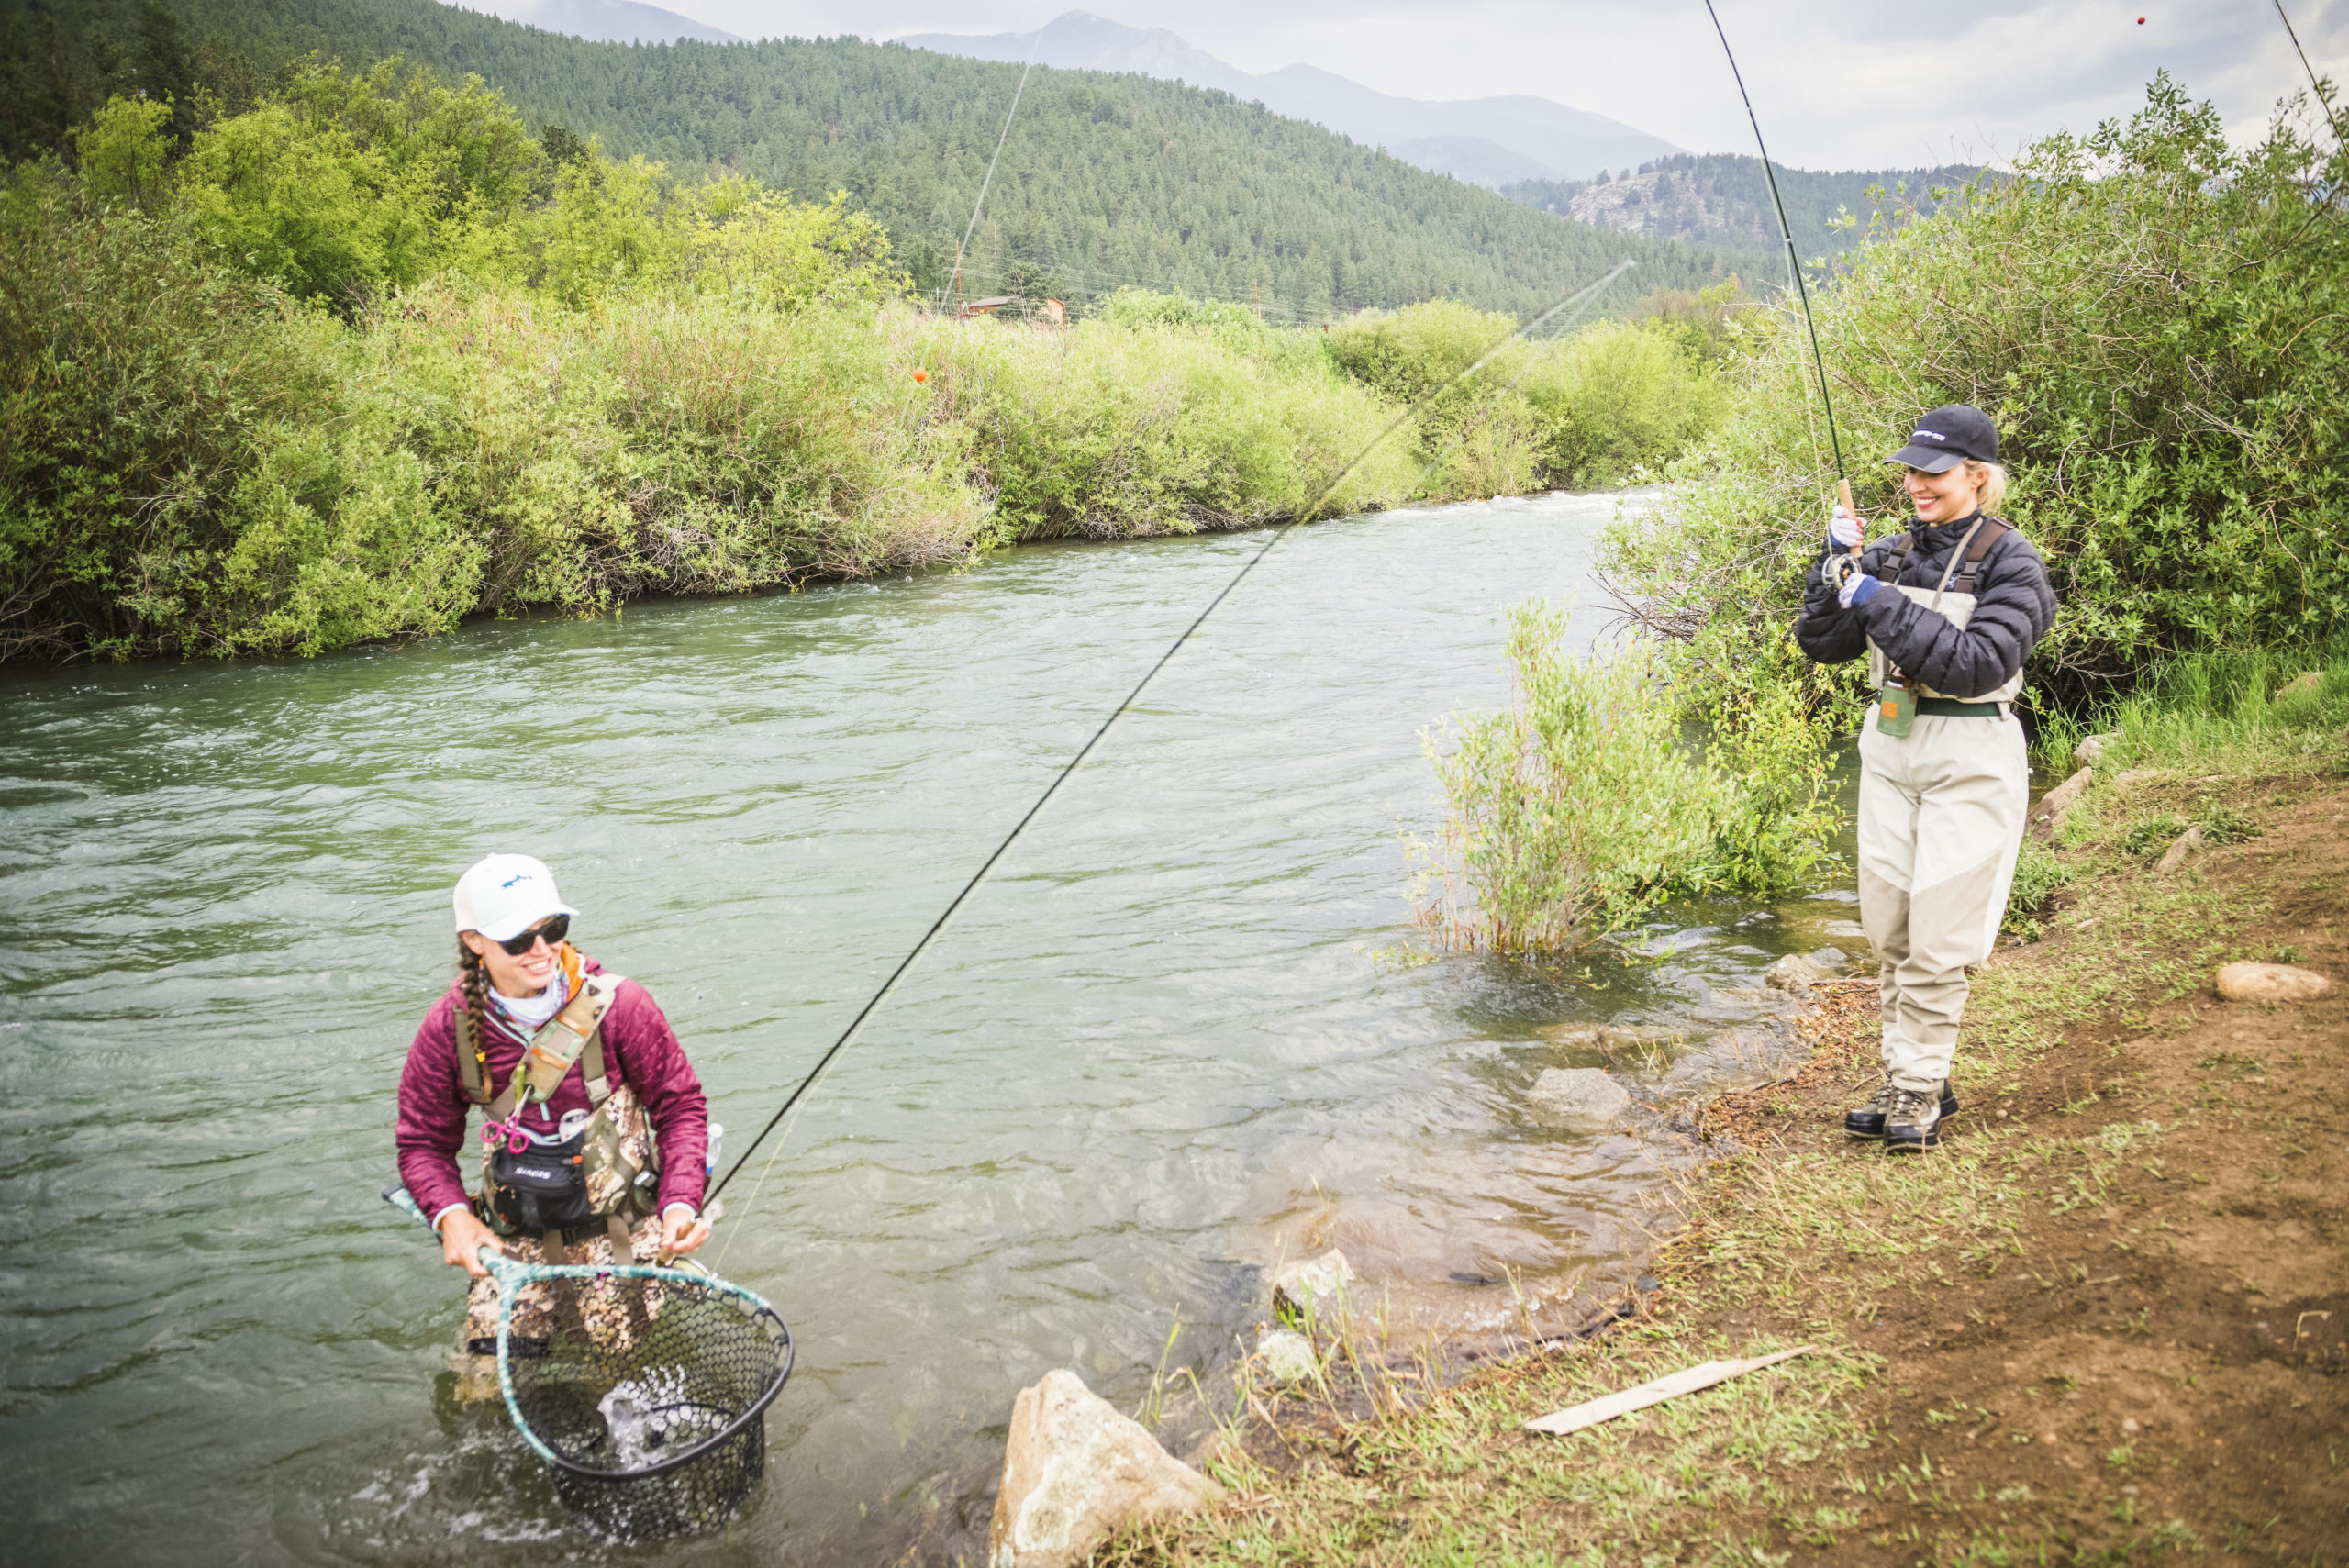 Guided fly fishing trips on private water near Denver.